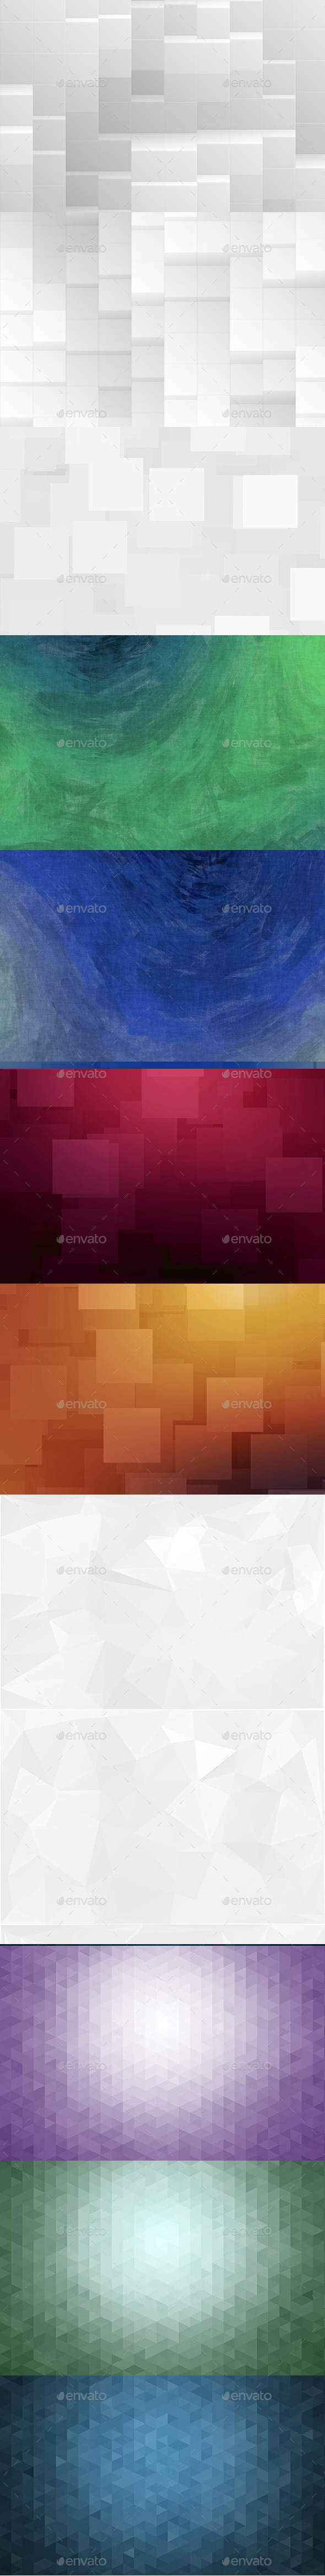 GraphicRiver Abstract Backgrounds Bundle Vol.1 11445170